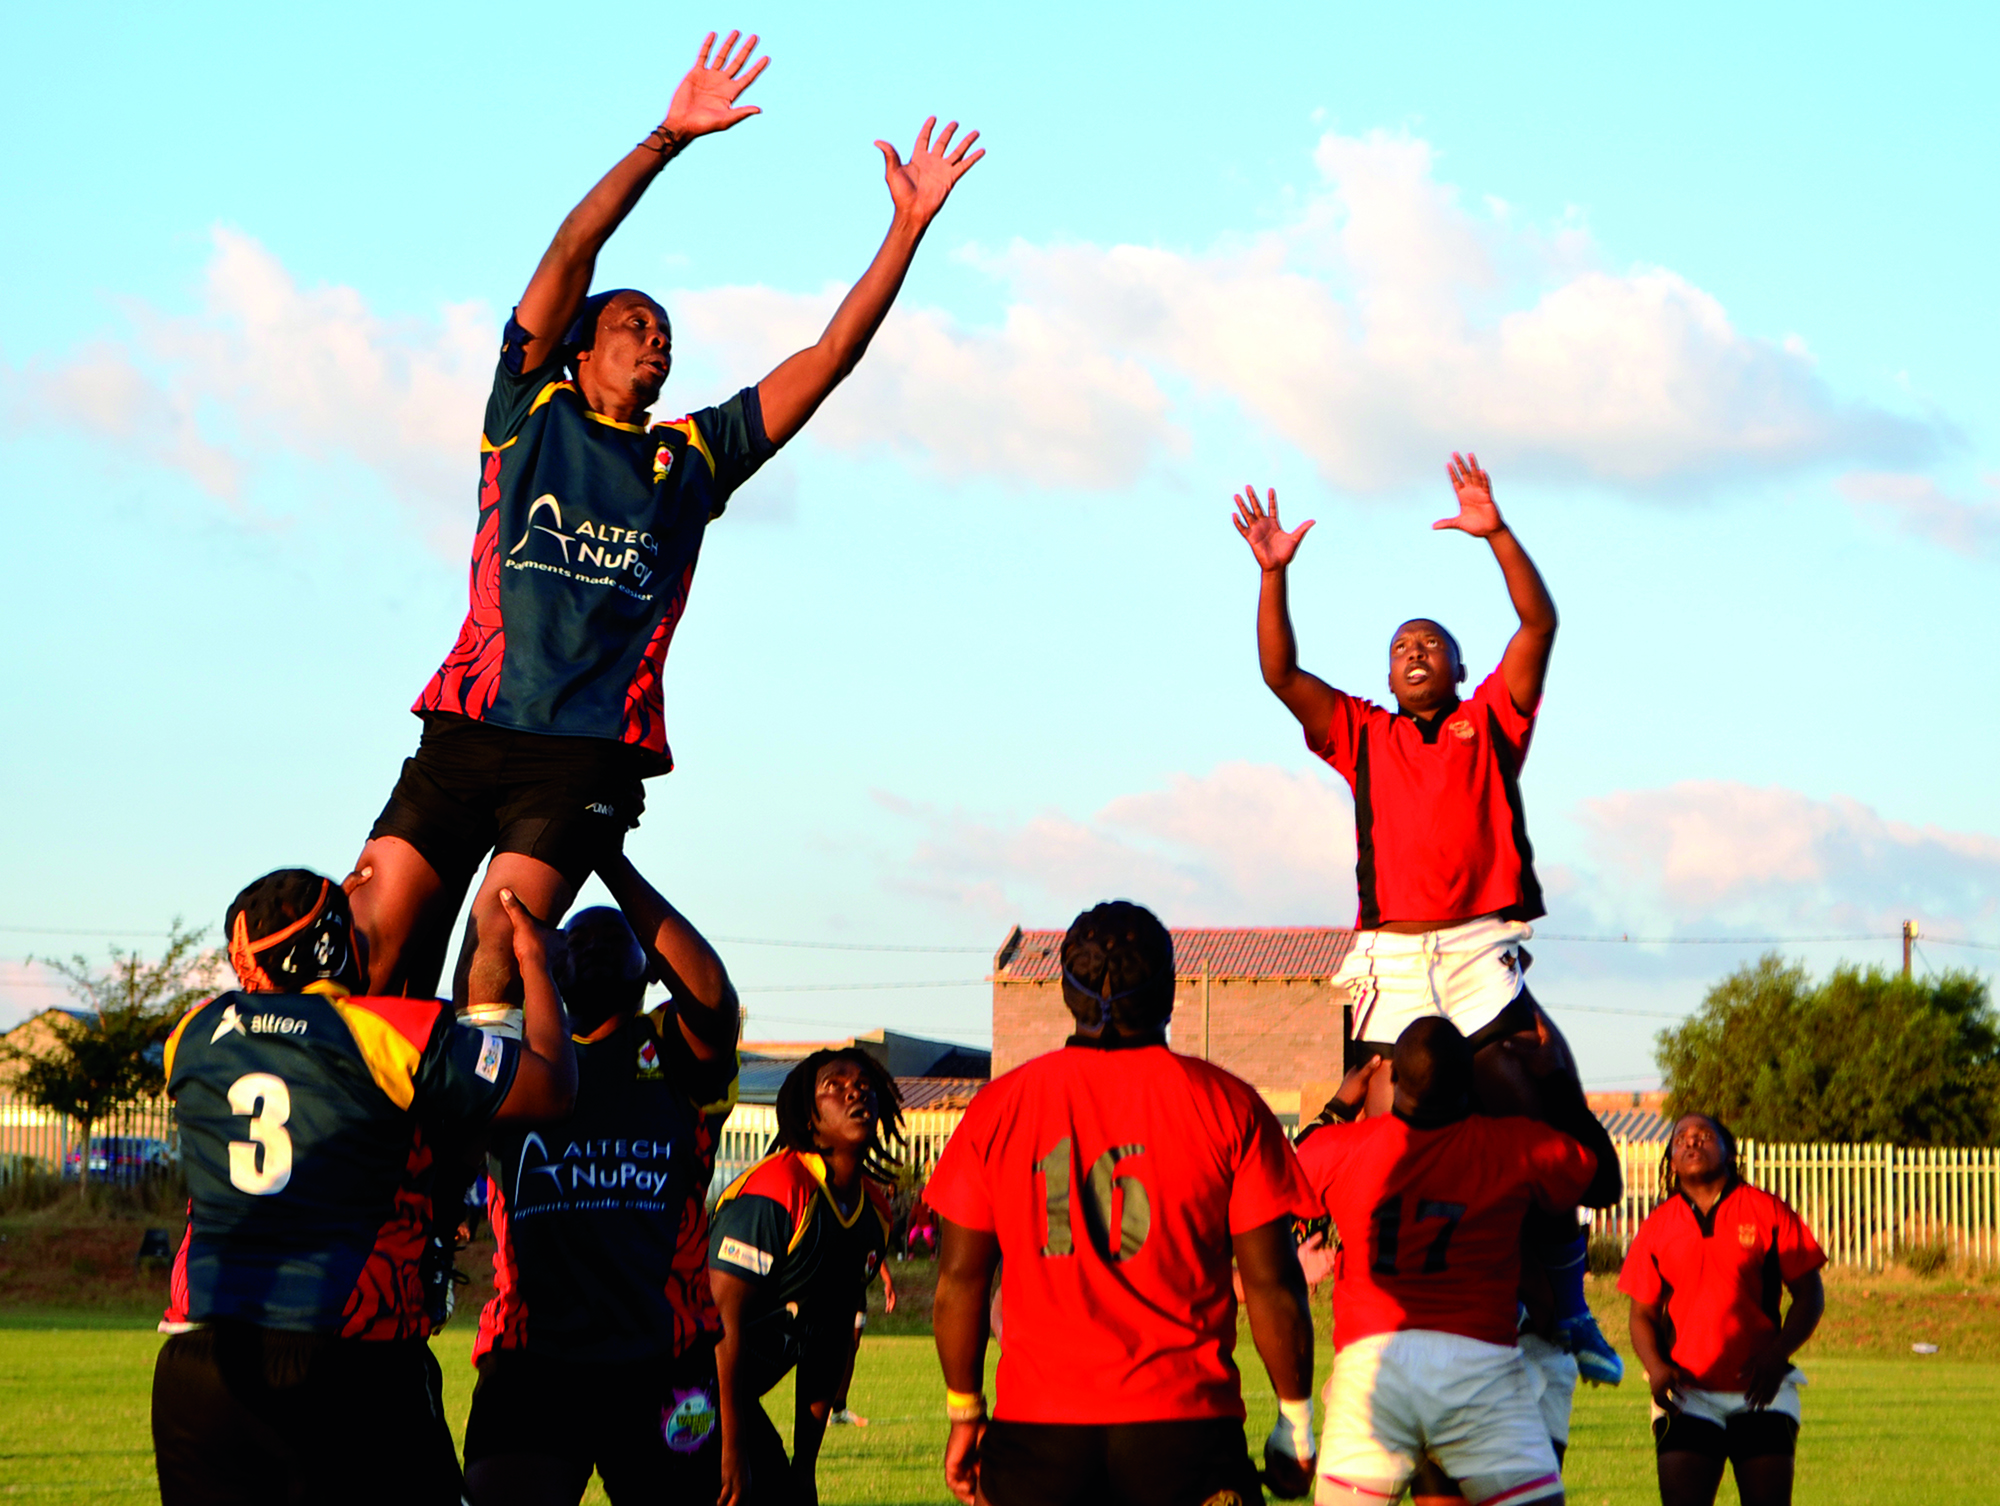 Image: The Soweto Rugby Team